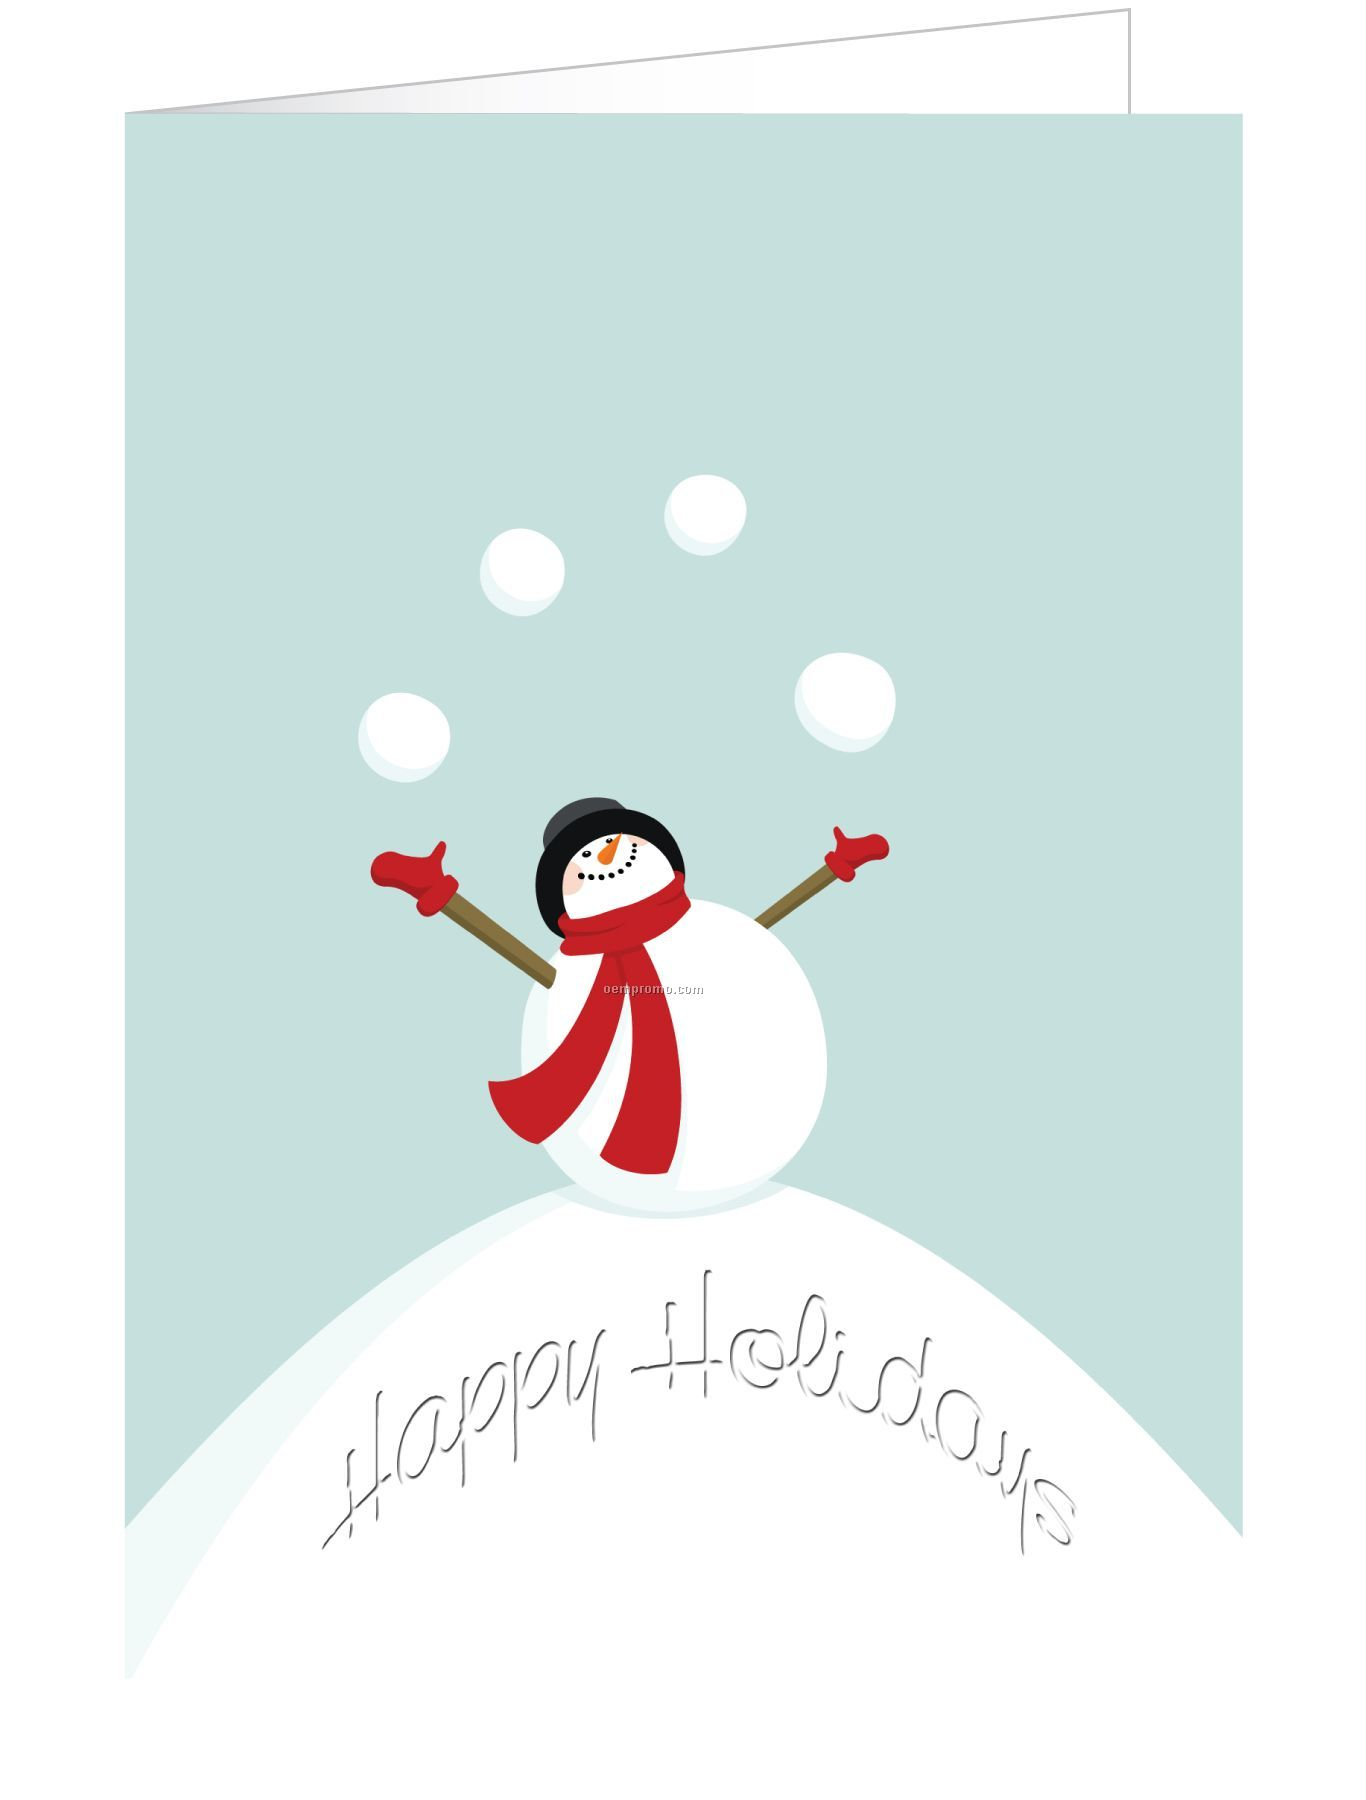 Quotes for christmas cards in french all ideas about christmas and holiday greetings phrases in french 2015 m4hsunfo